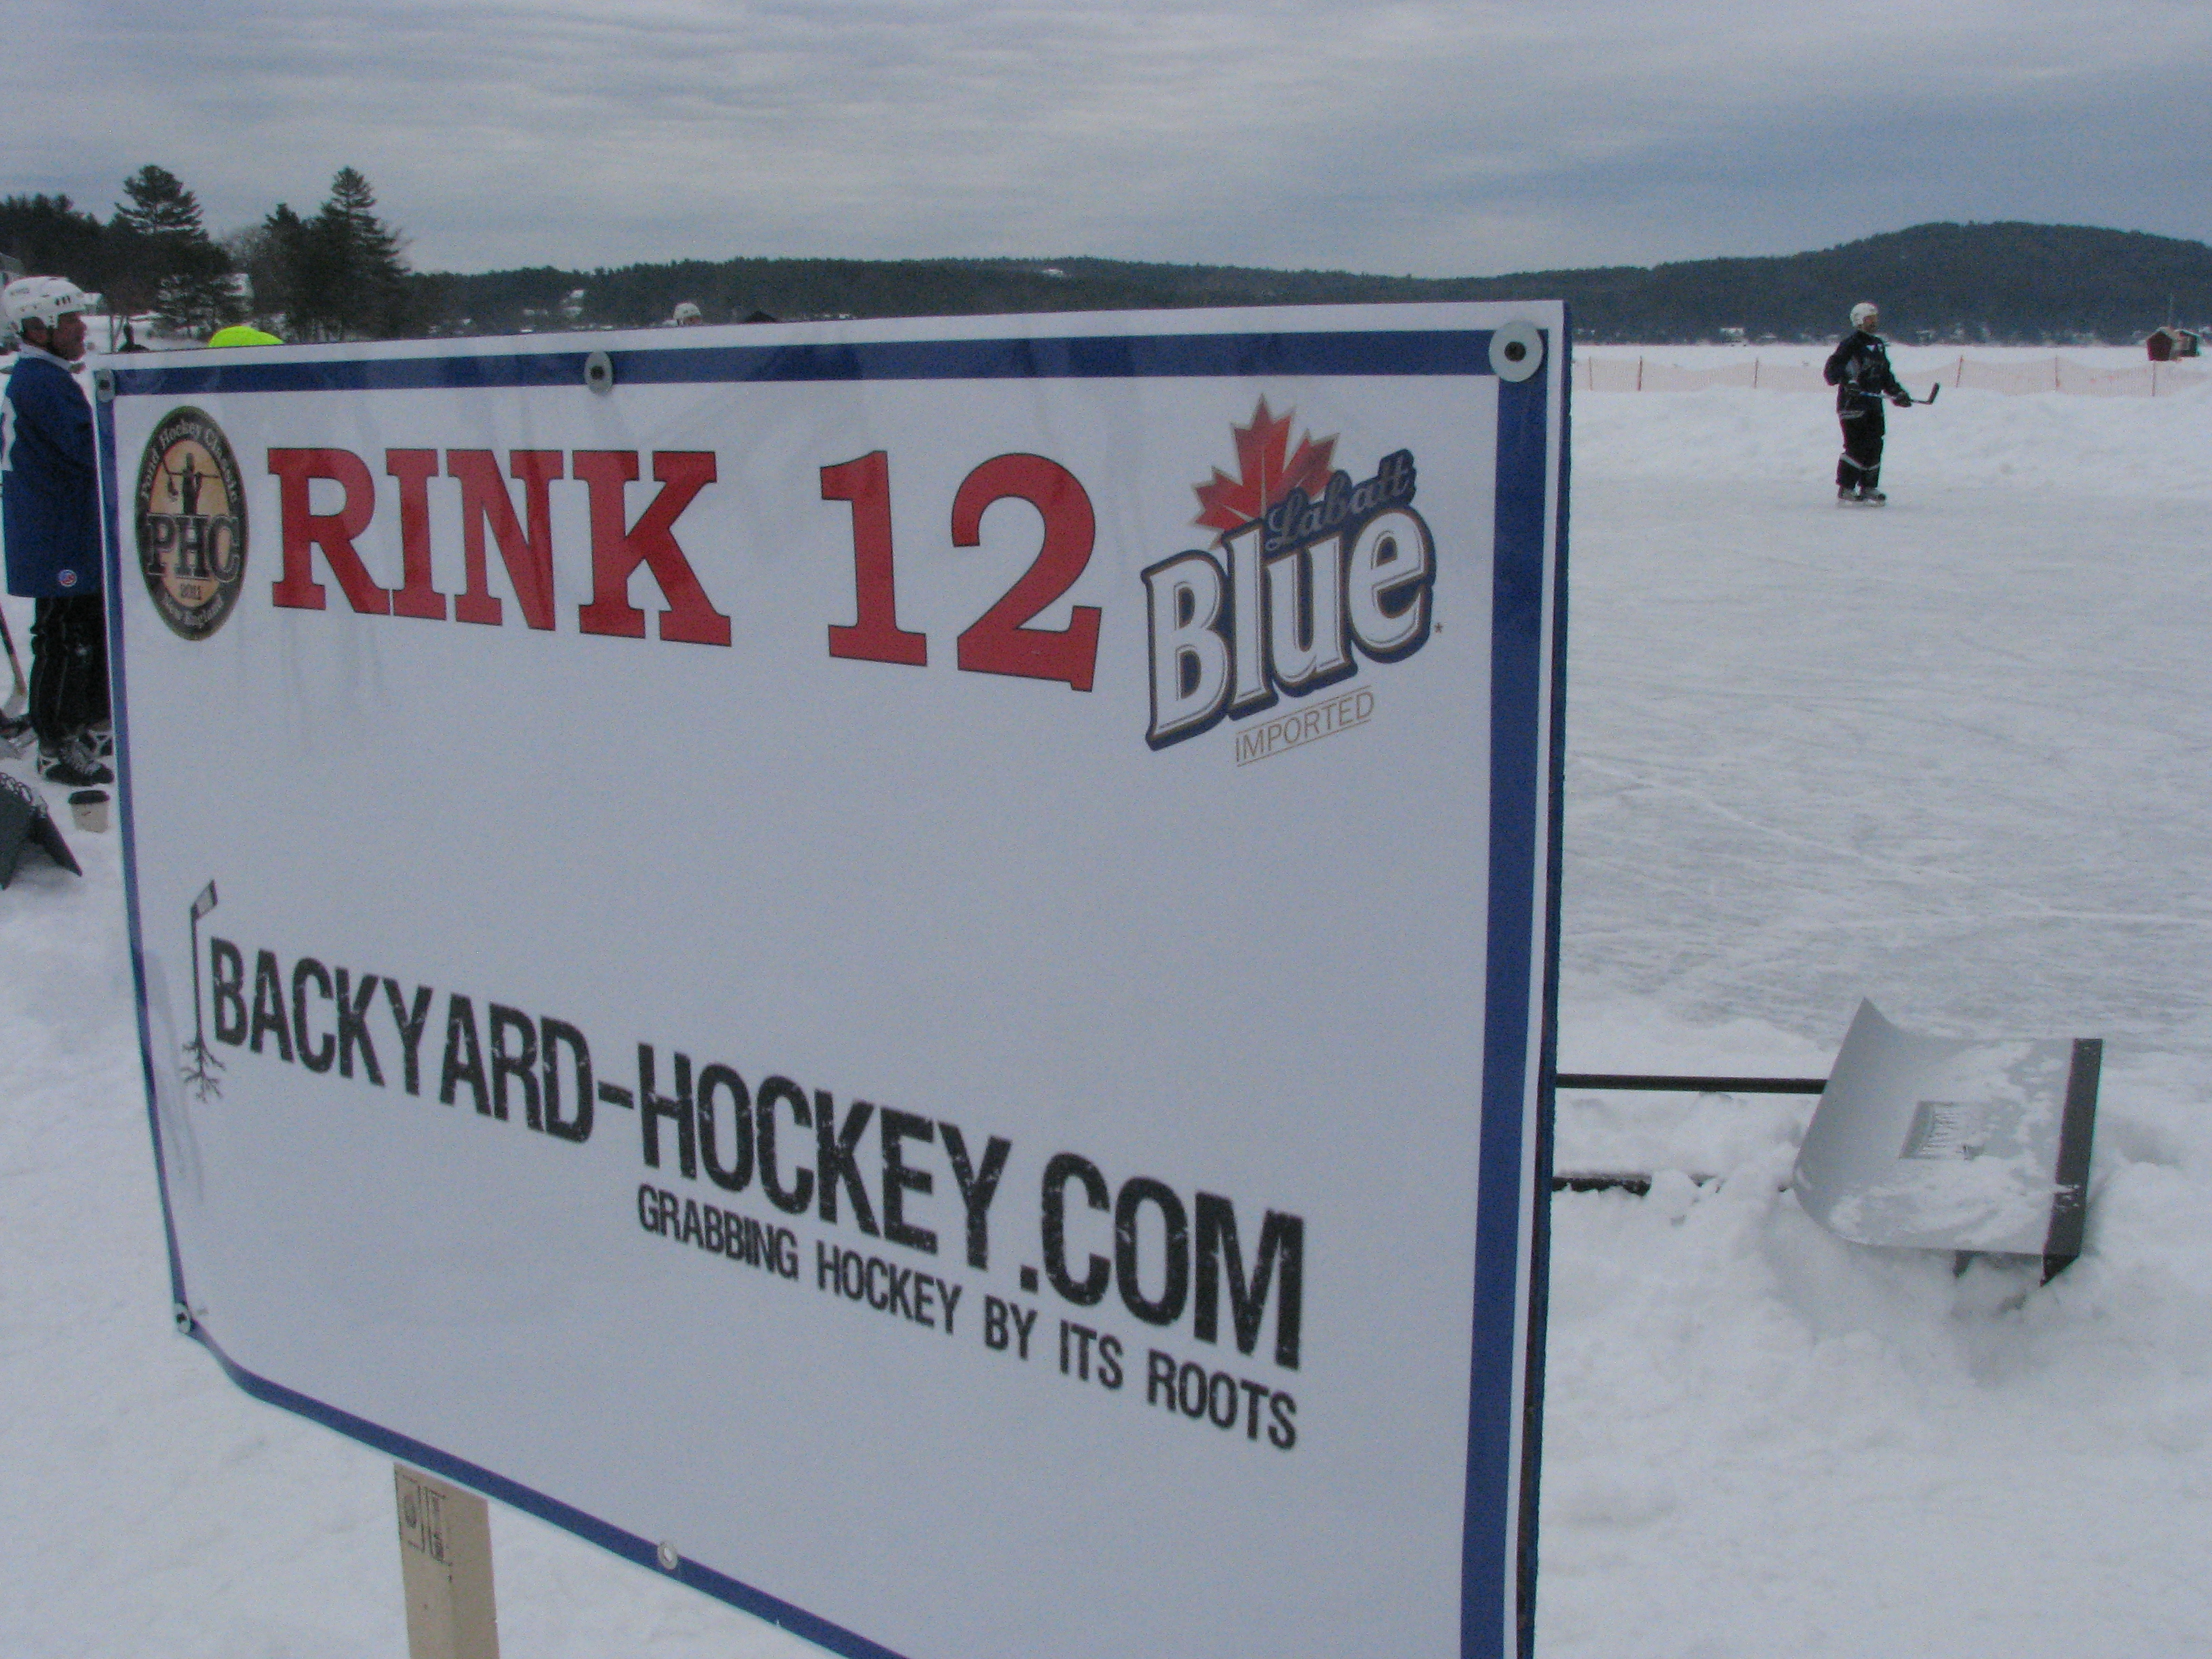 2011 New England Pond Hockey Classic Recap